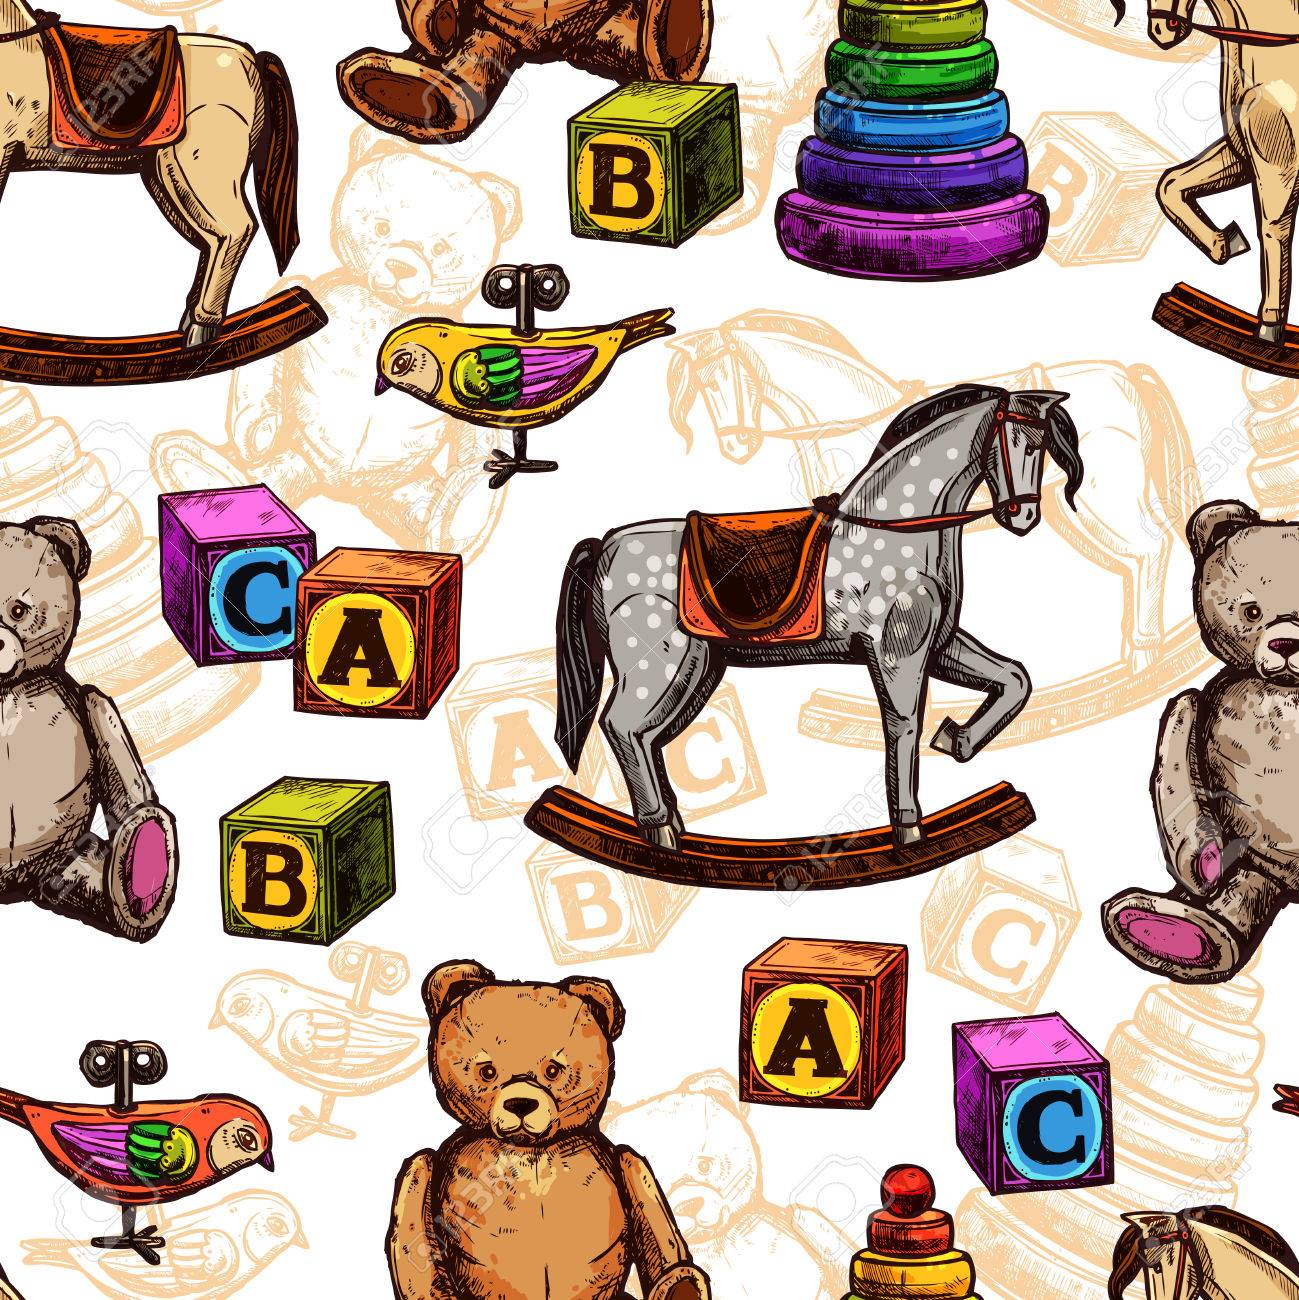 Vintage Toy Seamless Pattern With Sketch Rocking Horse Teddy Royalty Free Cliparts Vectors And Stock Illustration Image 44389363